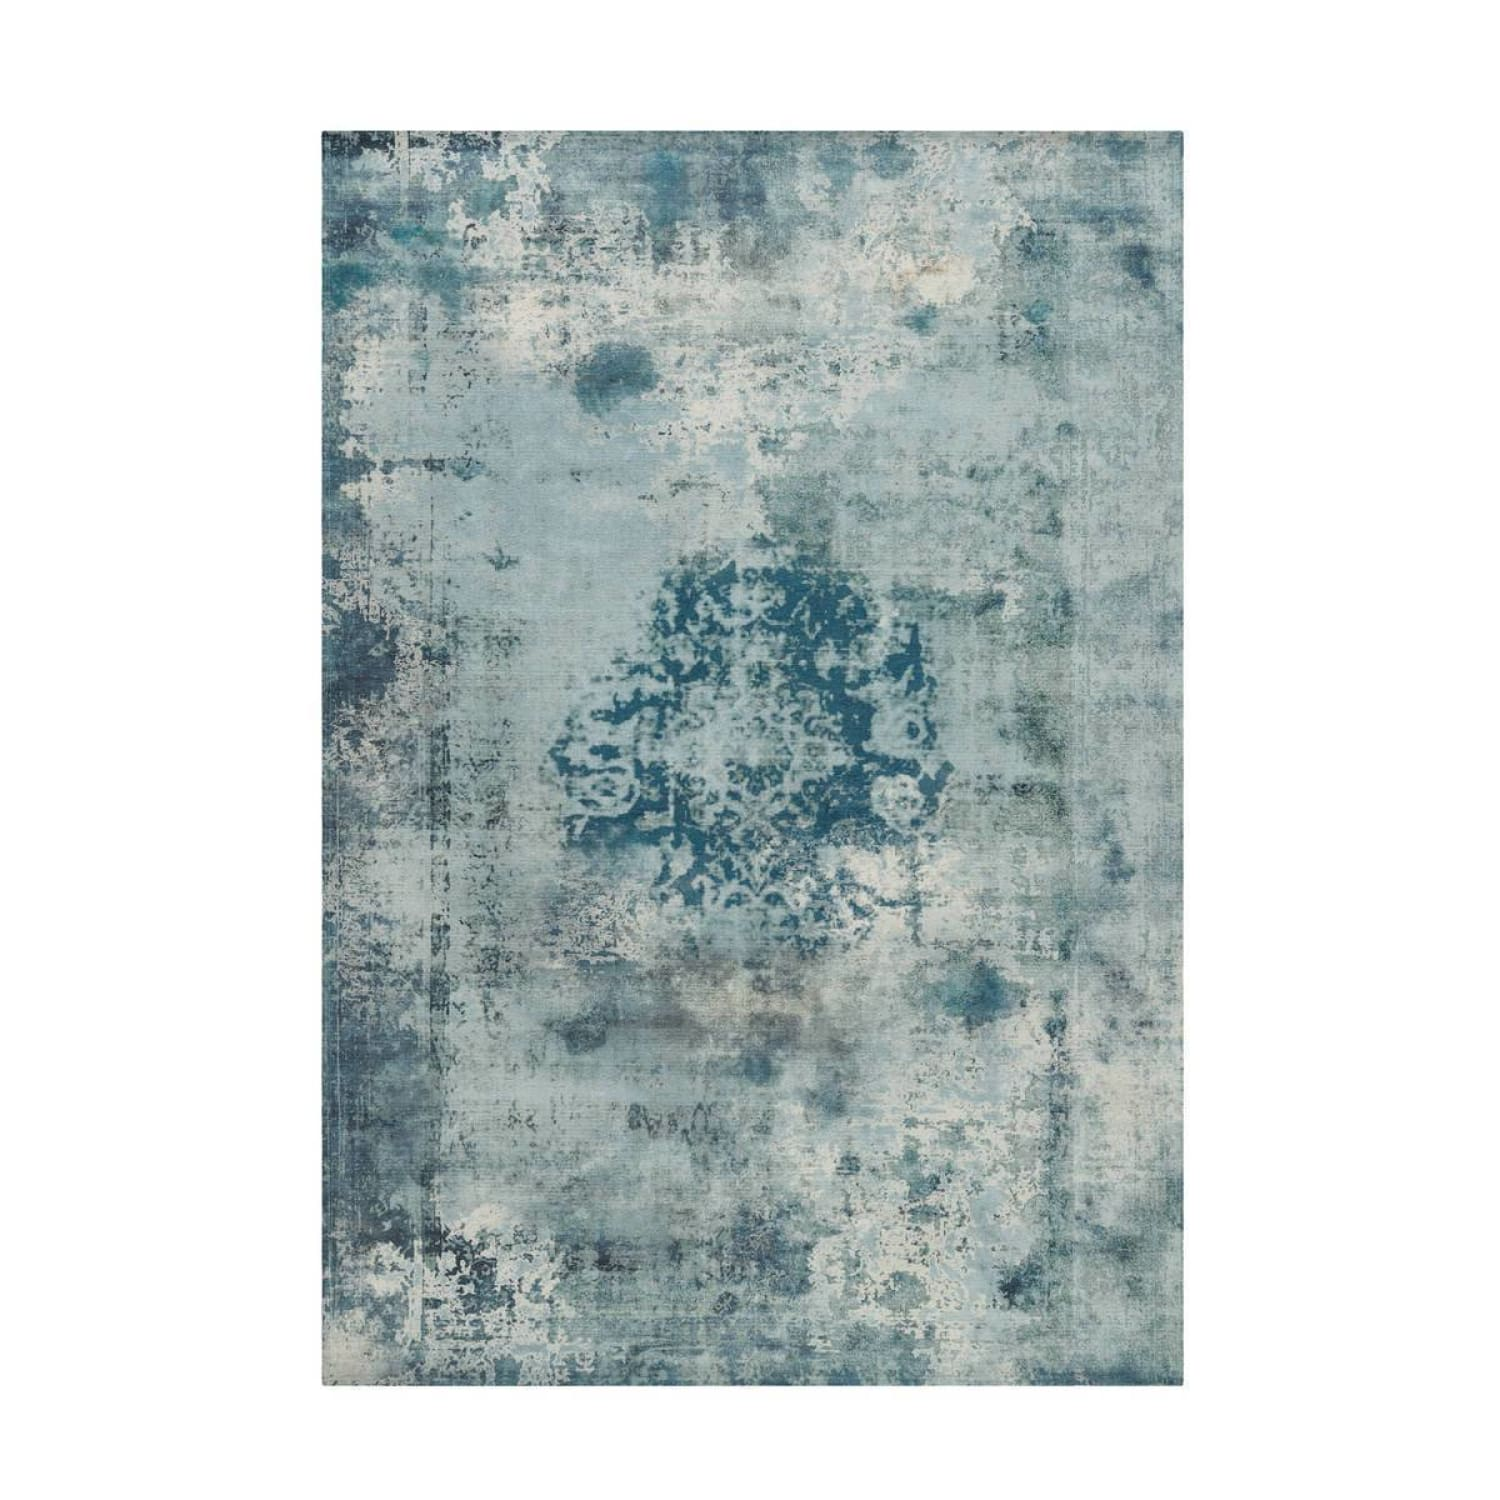 Tapis Design Traditionnel Vintage 8403 Petrol